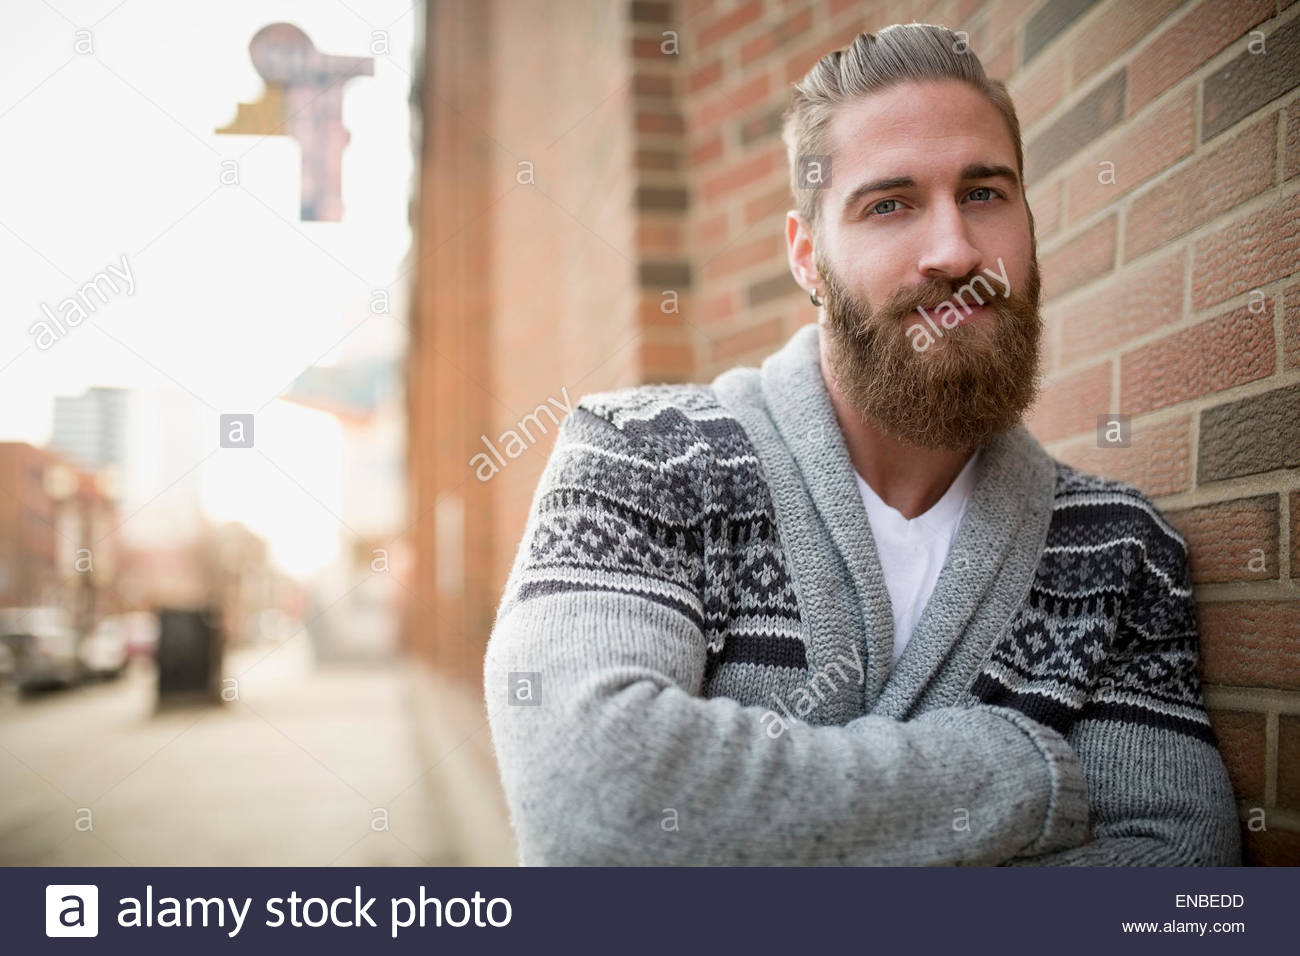 Portrait confident bearded man sweater leaning brick wall - Stock Image